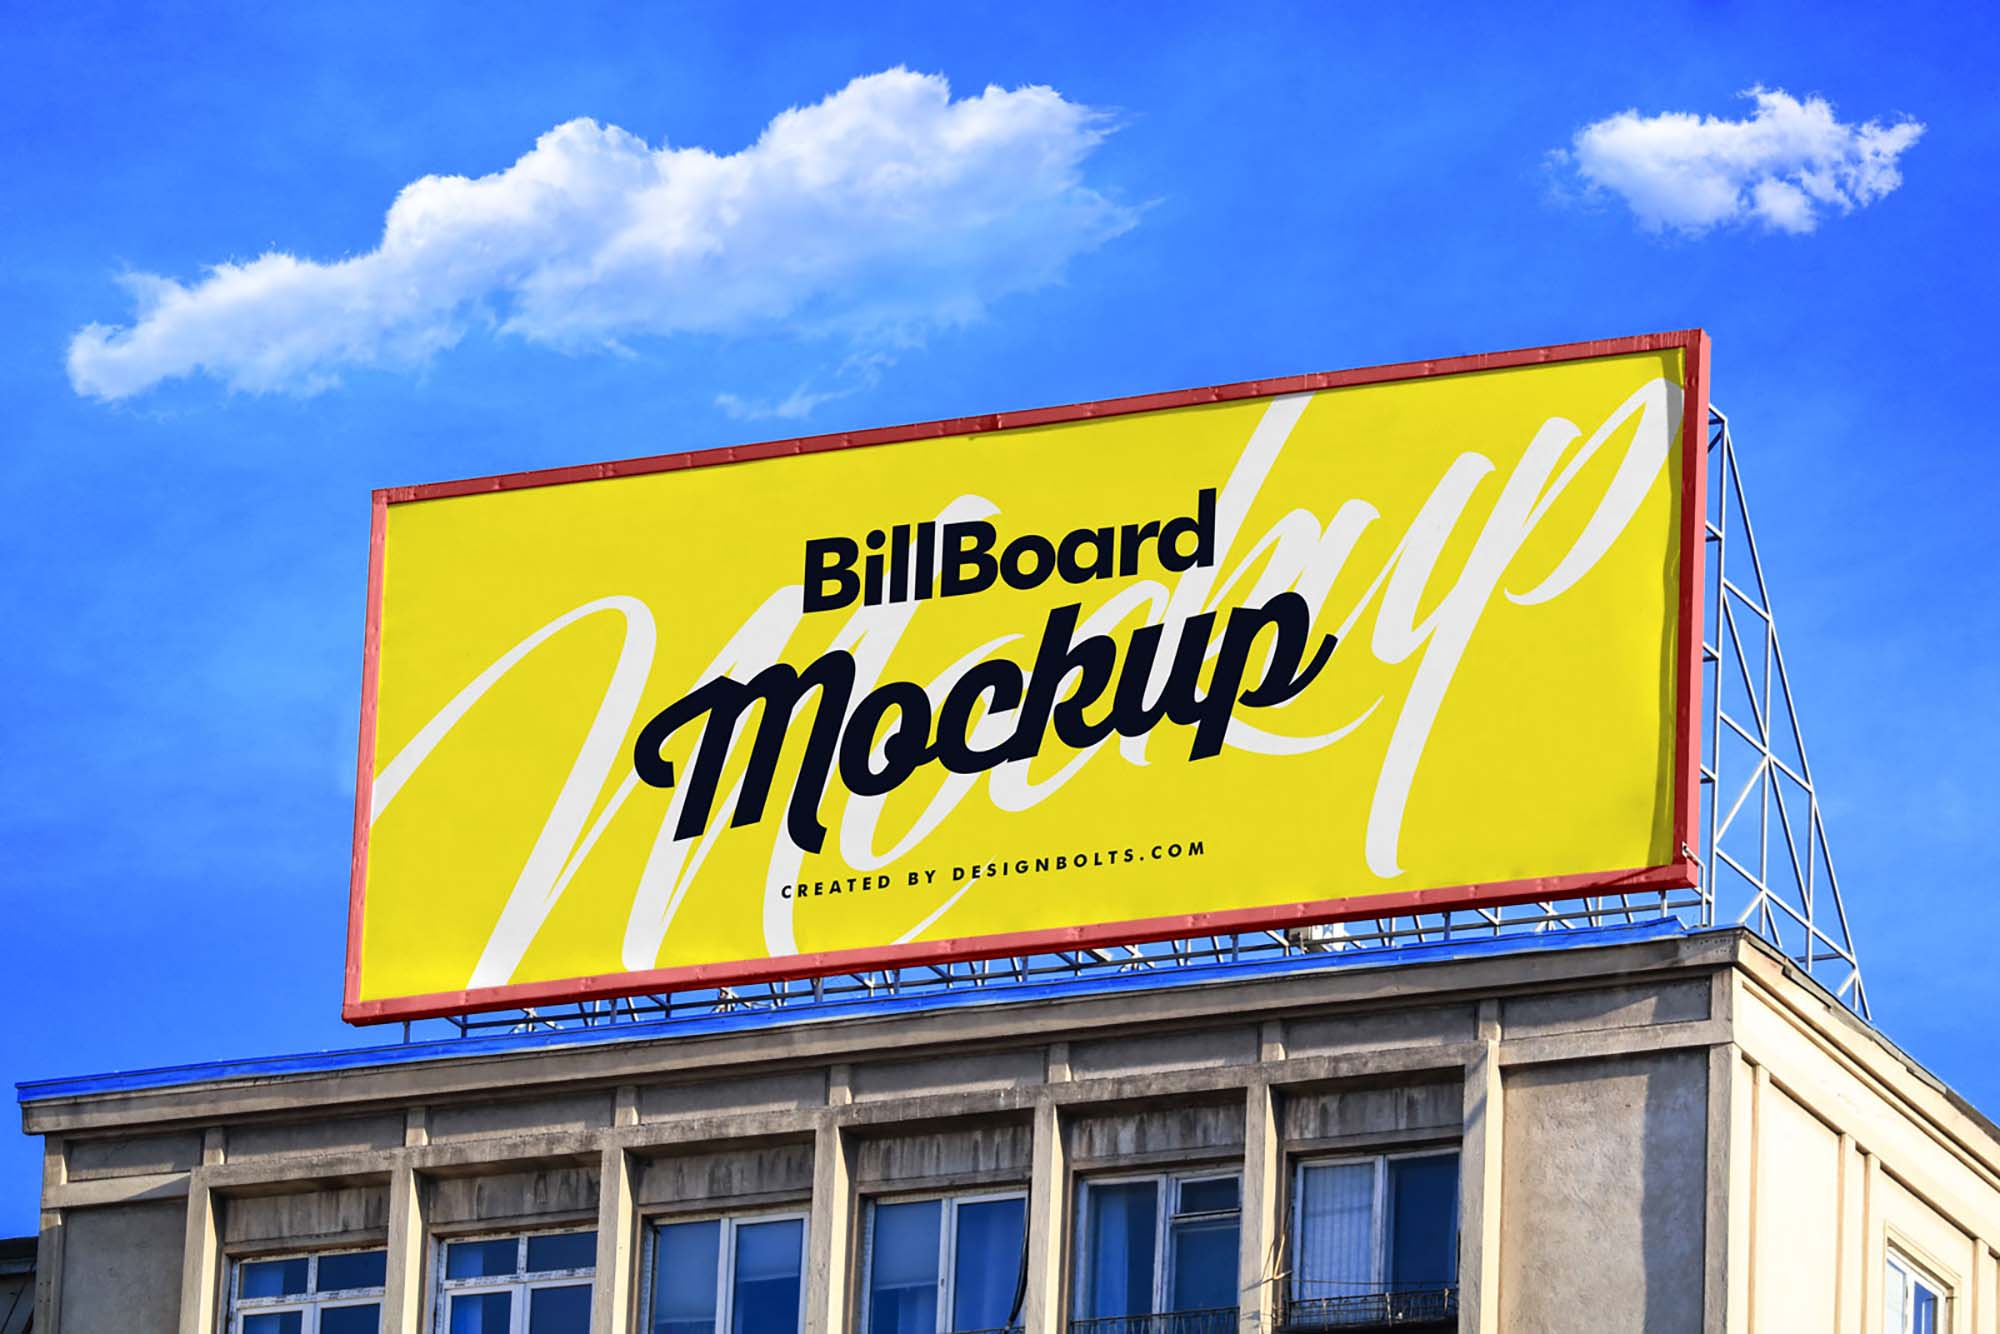 Building Billboard Mockup